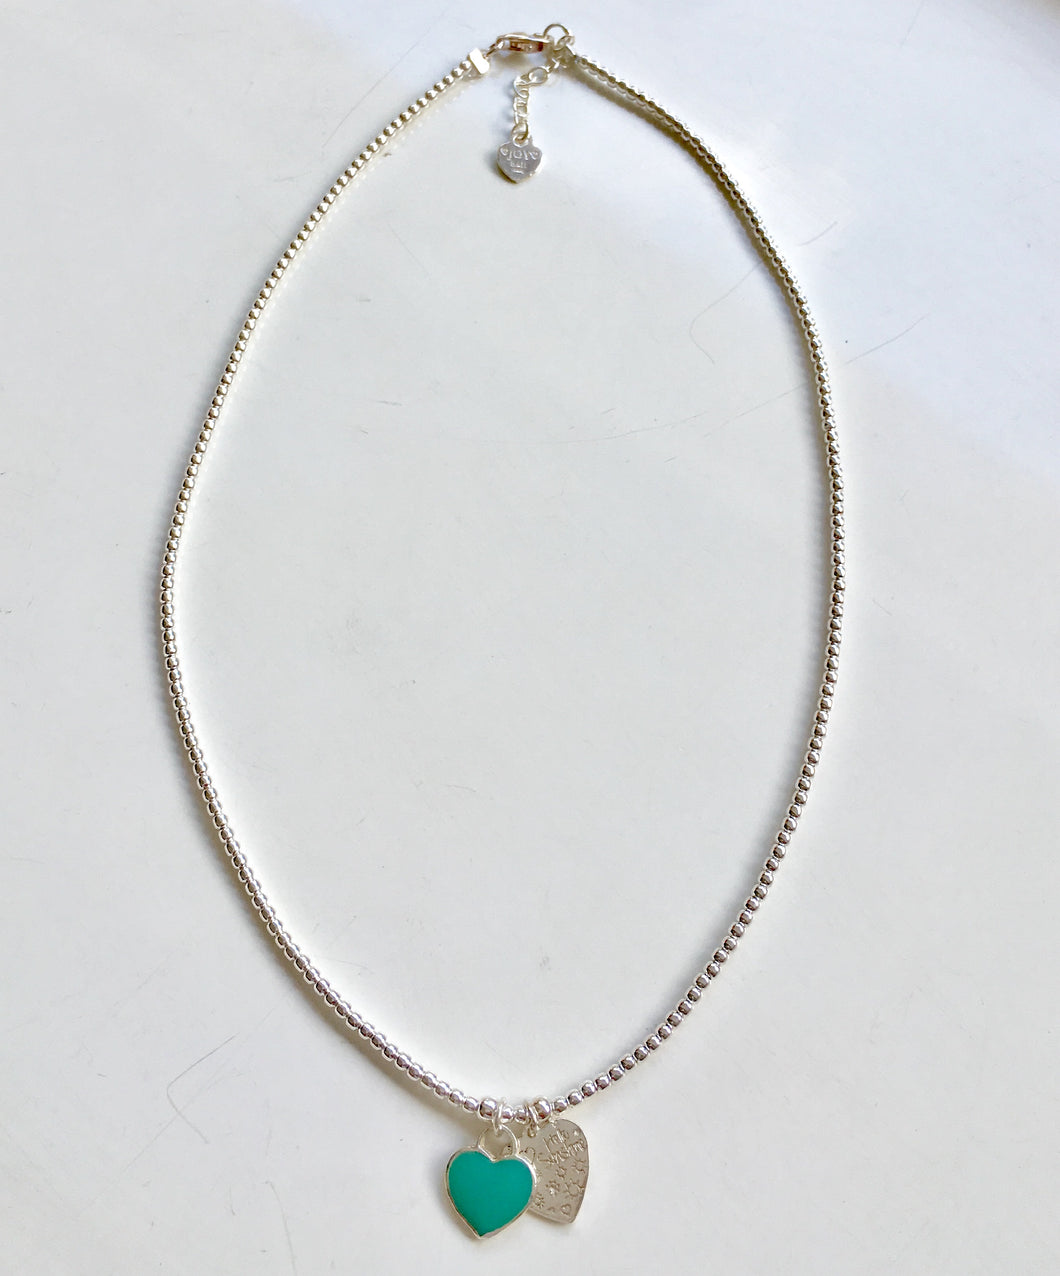 Necklace Tarquina Azul Sunshine - Joy Jewellery Bali